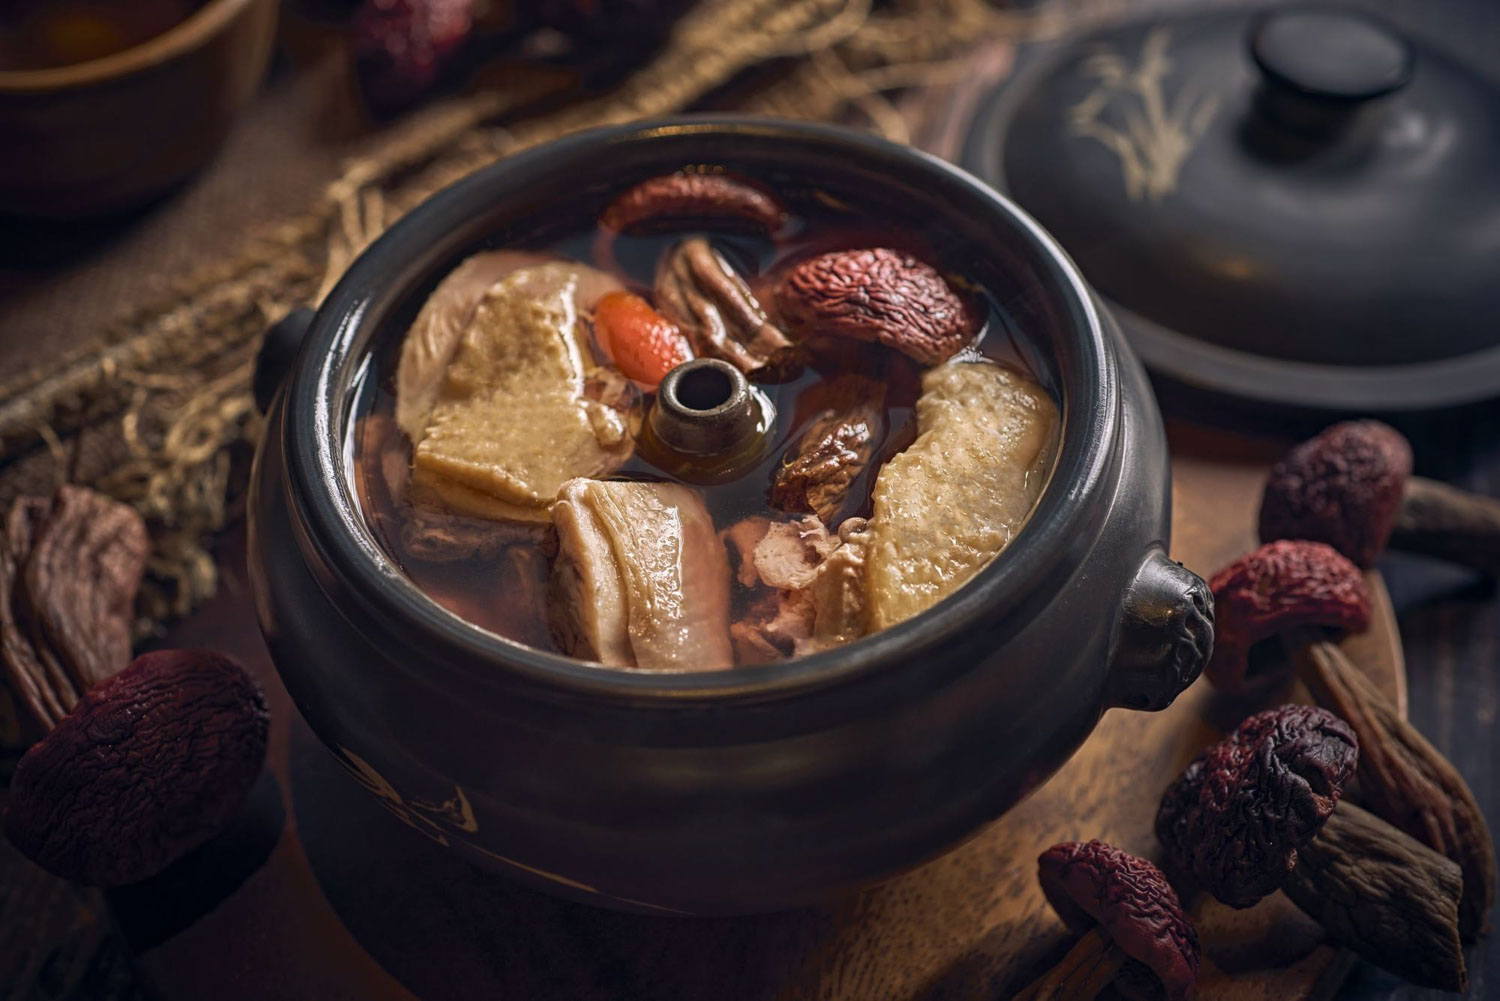 Yun Nans Nex - steamed pot chicken soup with red mushrooms